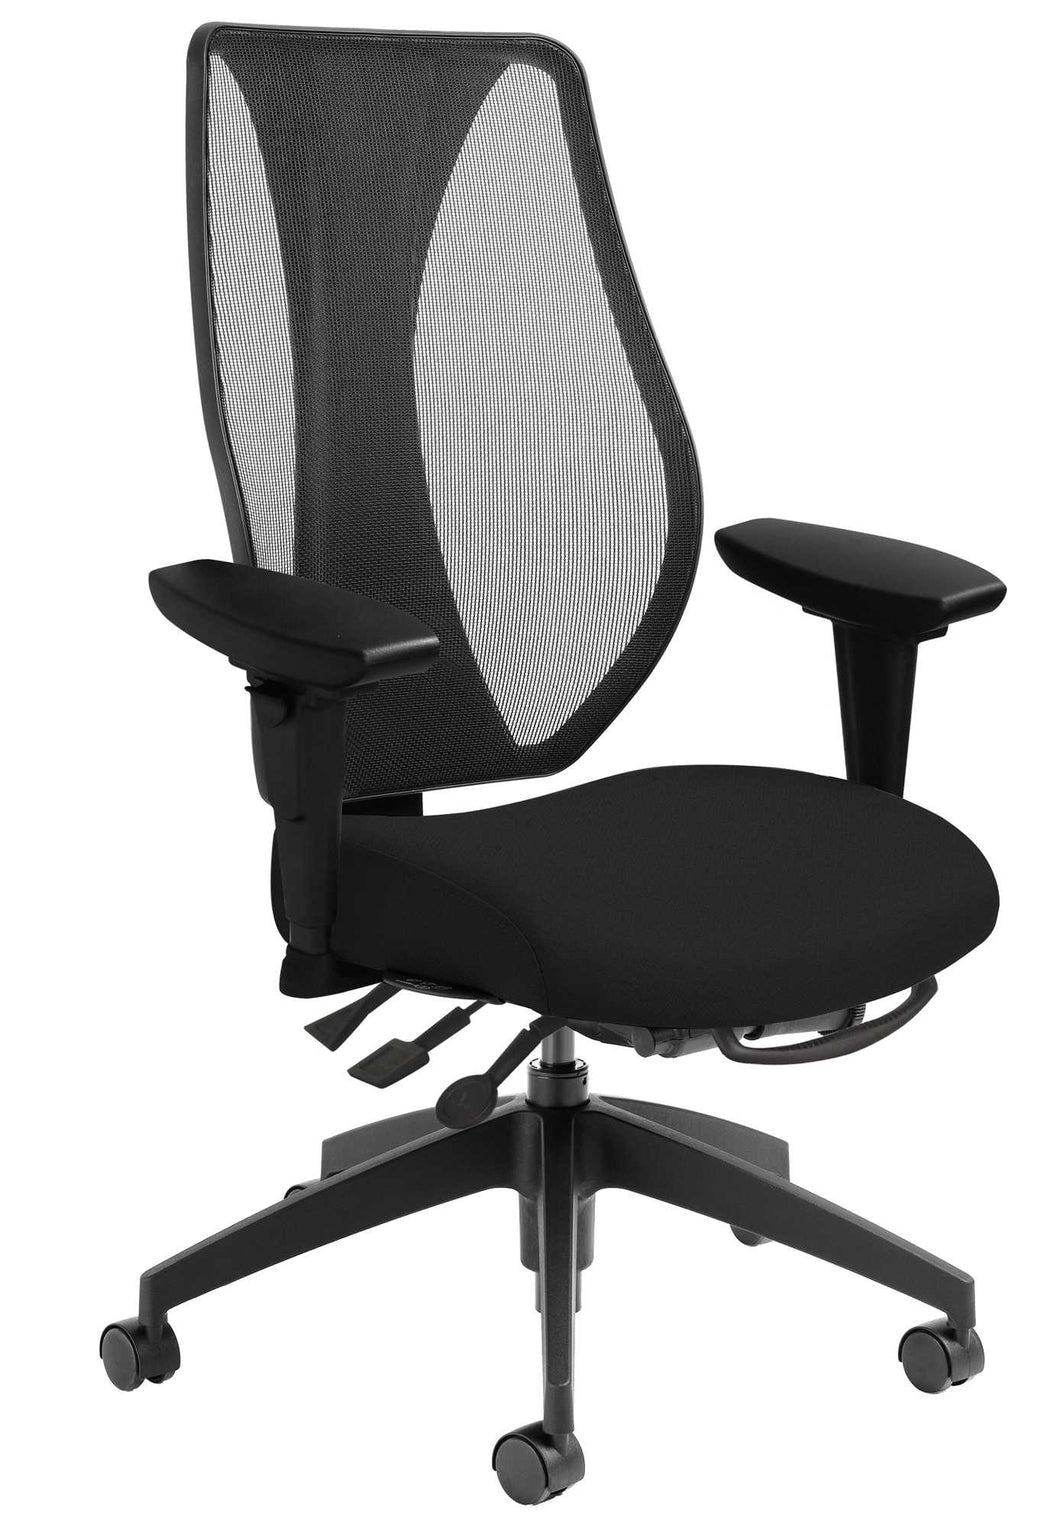 Ergocentric tCentric Chair